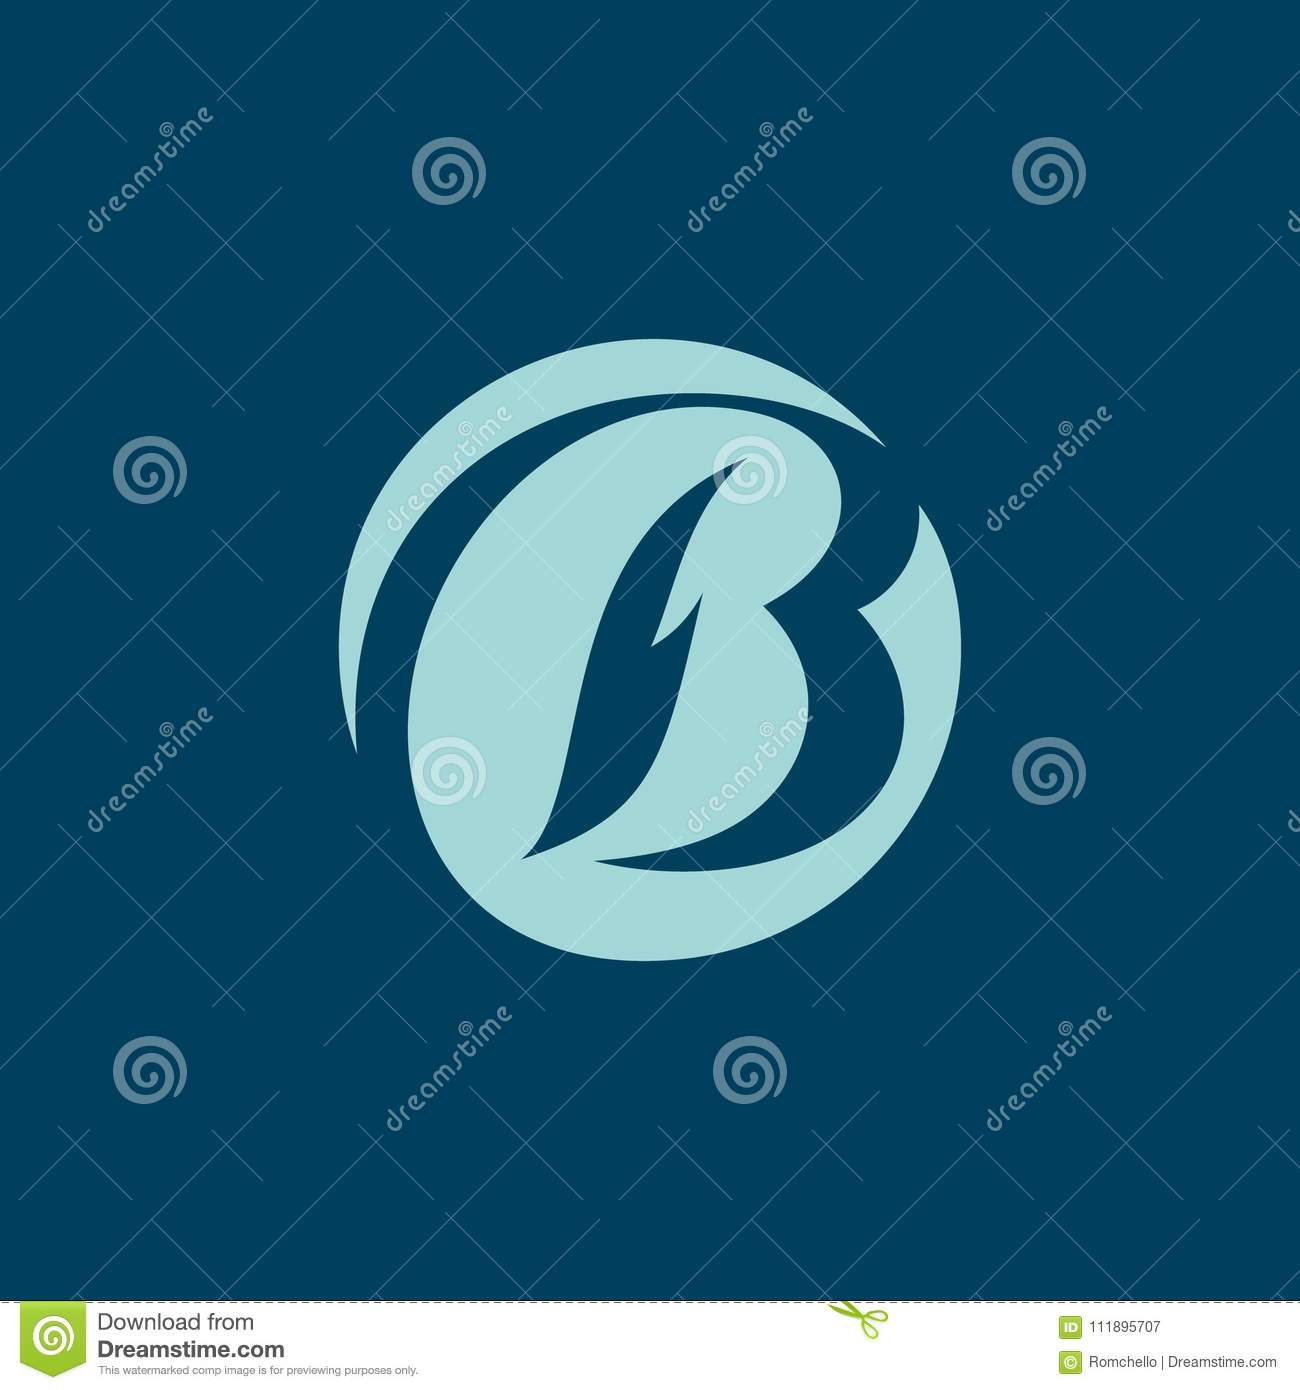 Sign the letter B